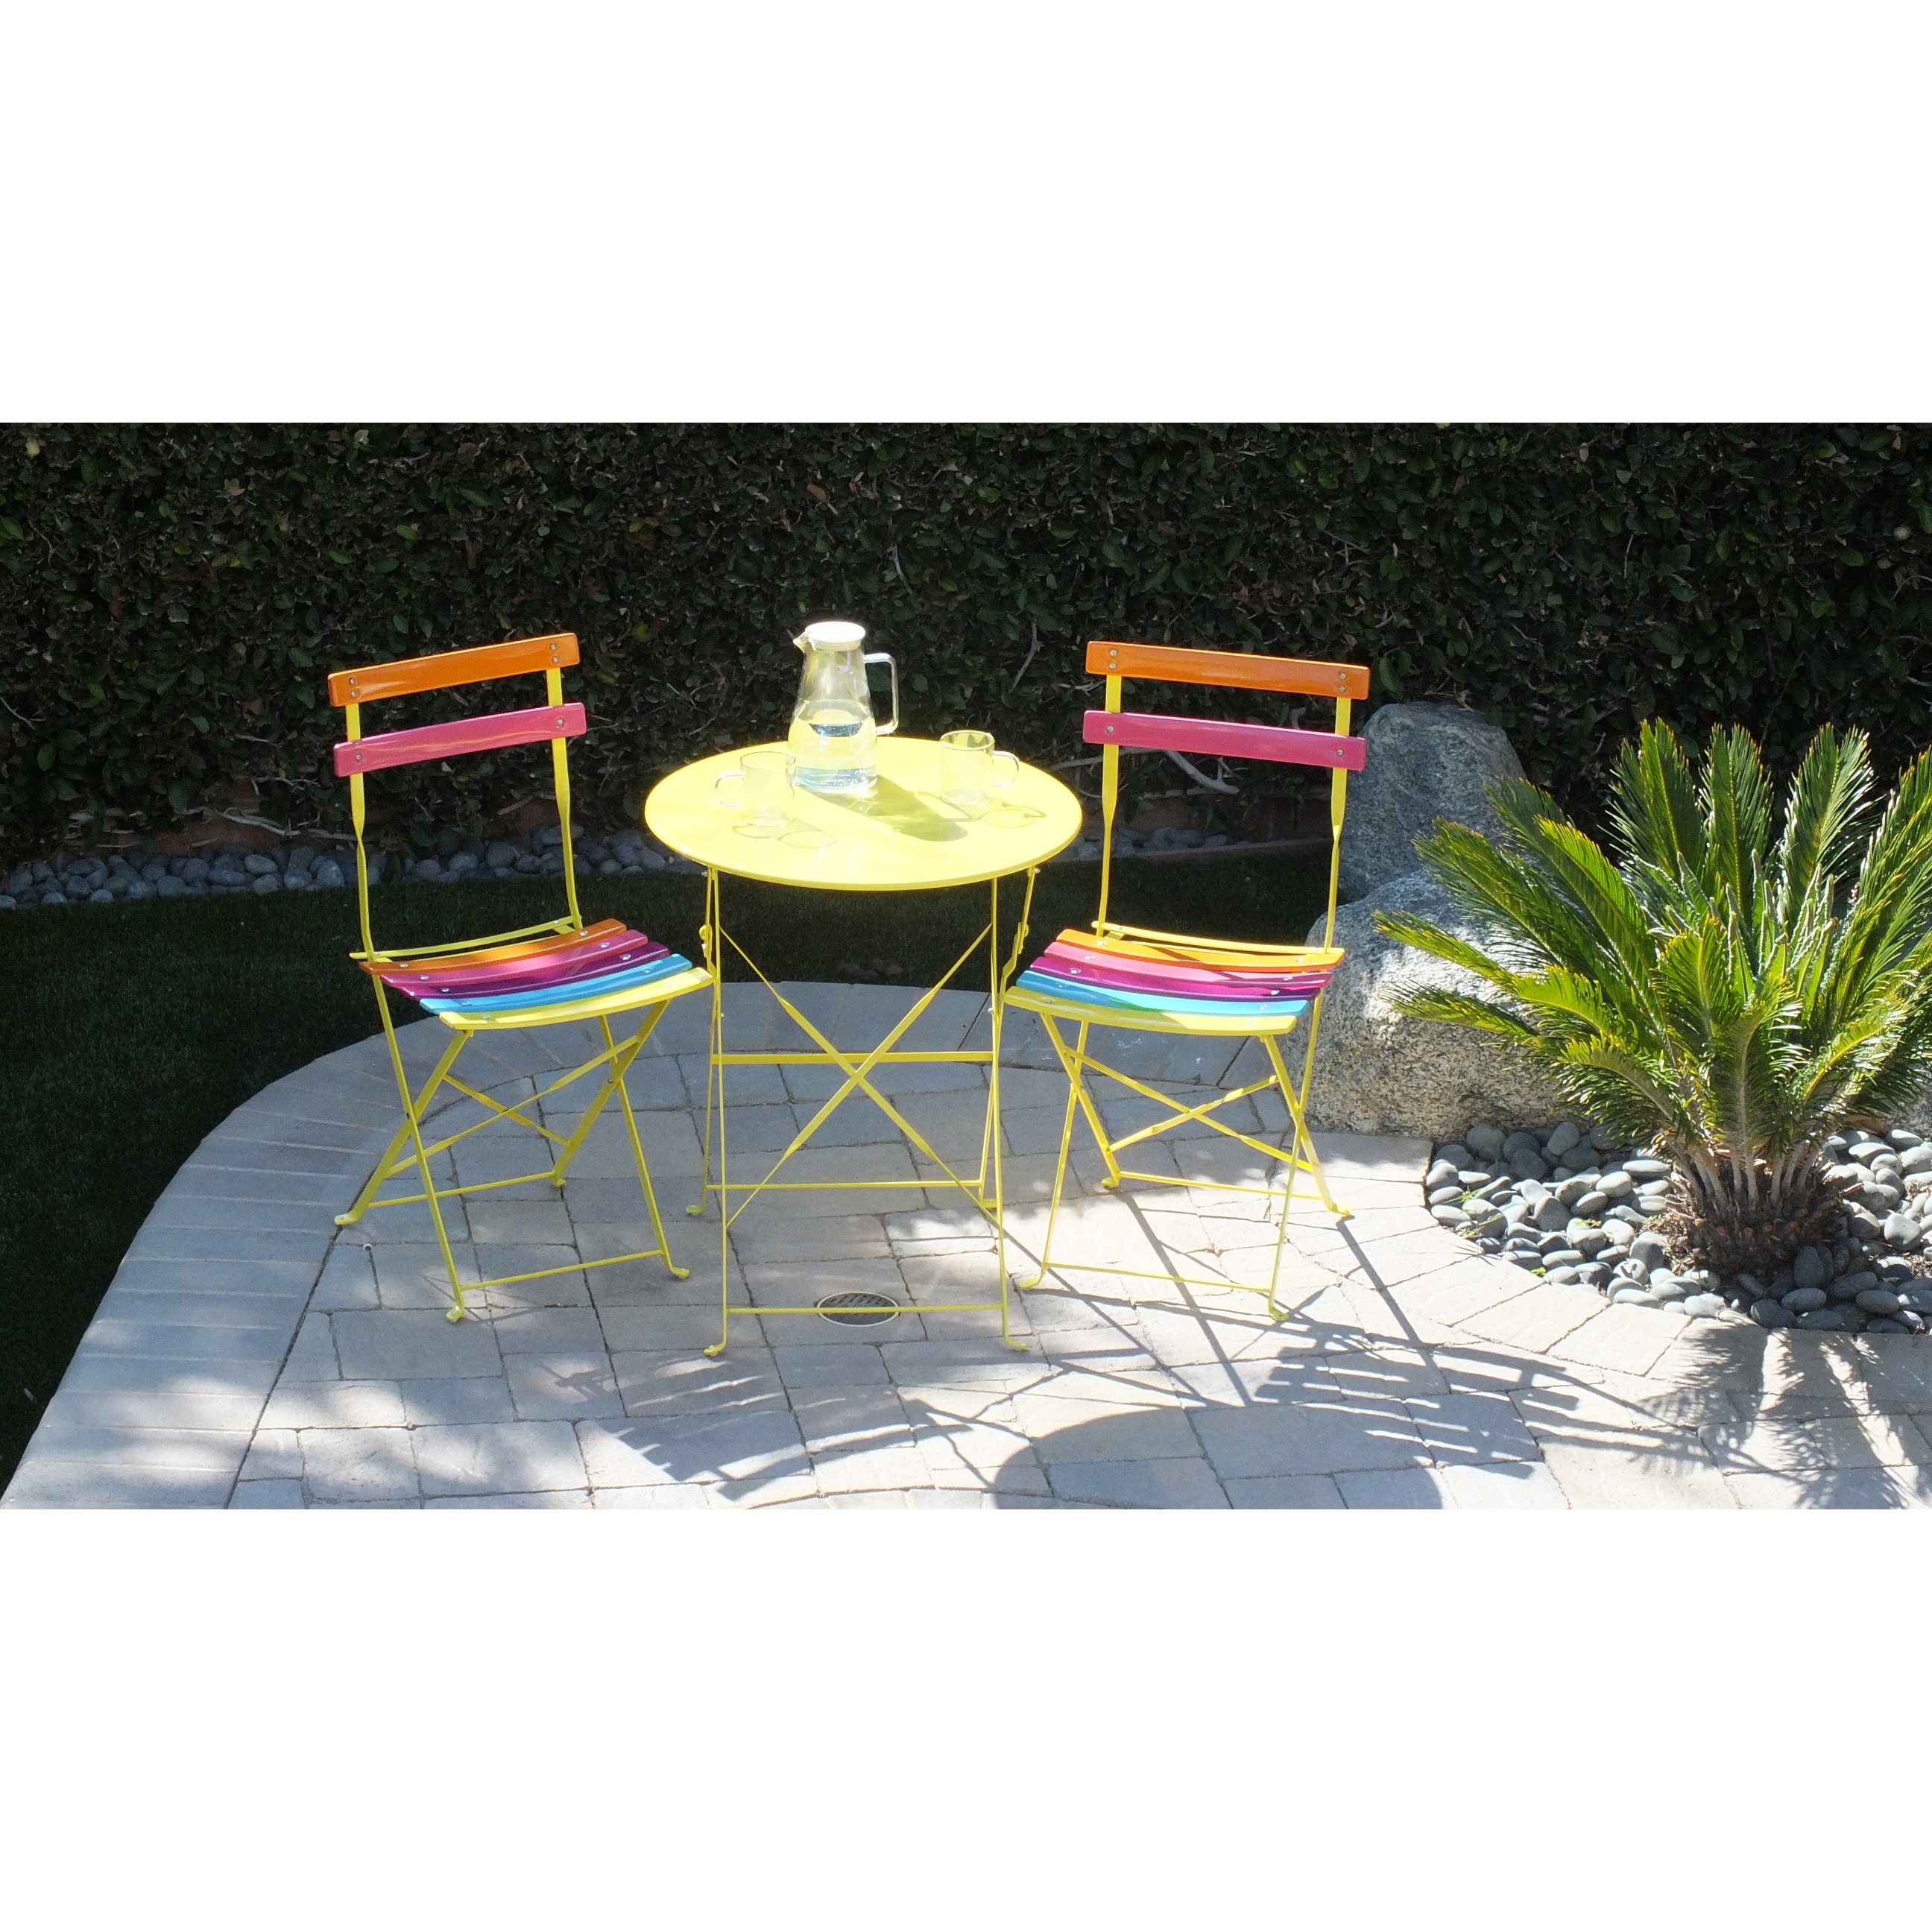 Alpine Corporation Indoor Outdoor 3 Piece Bistro Set Folding Table And Chairs Patio Seating Rainbow Overstock 27961467